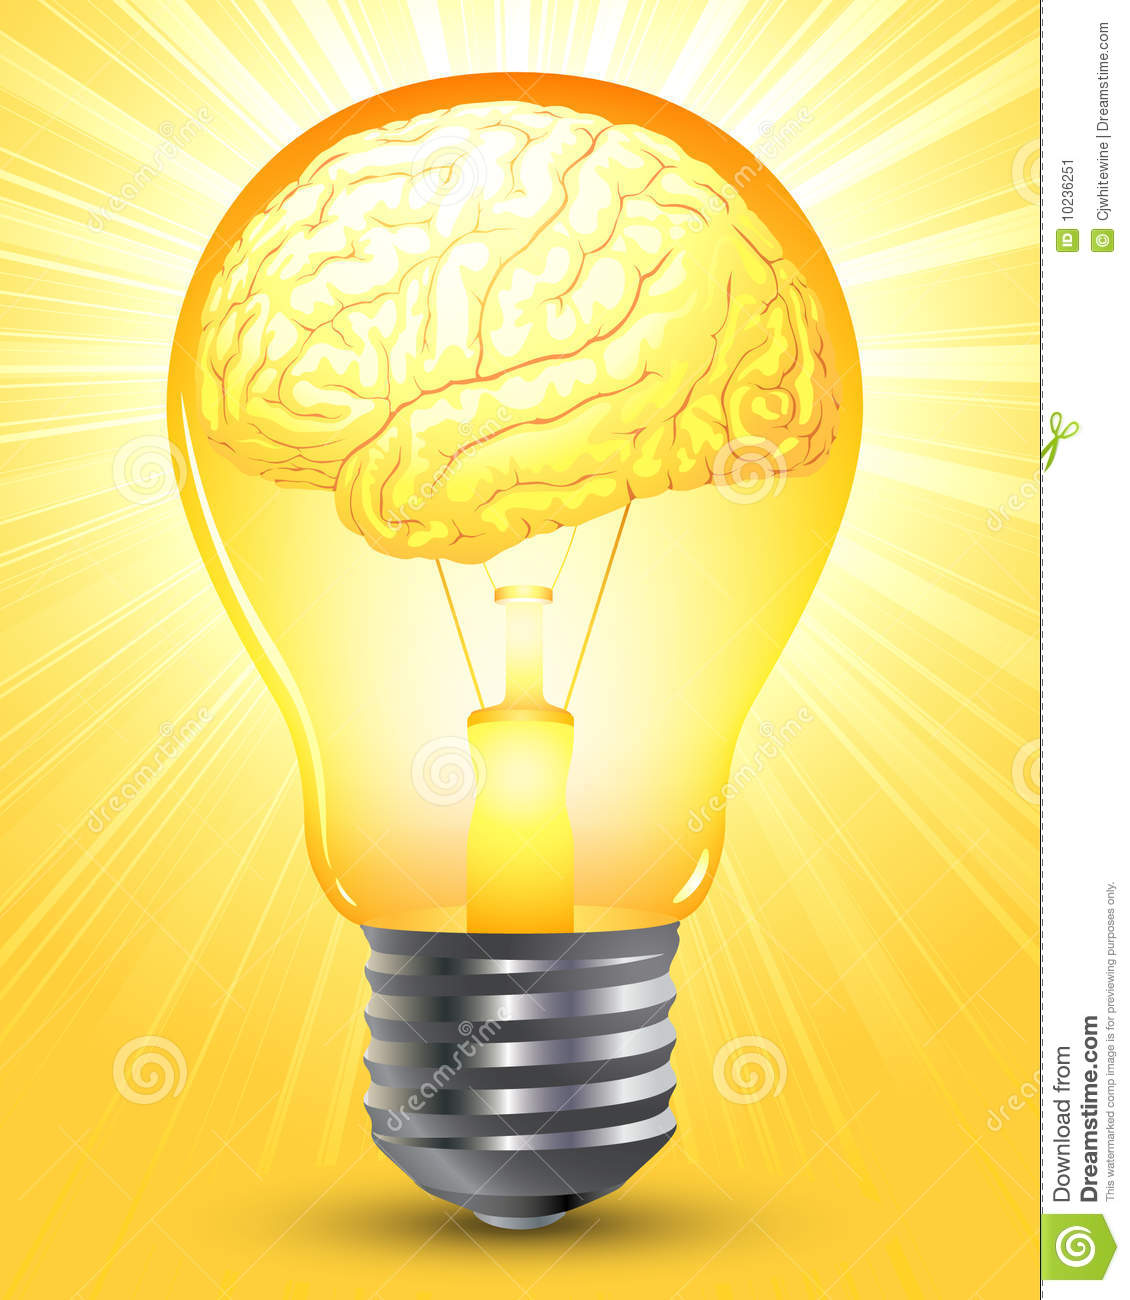 Http Www Dreamstime Com Stock Image Smart Brain Image10236251